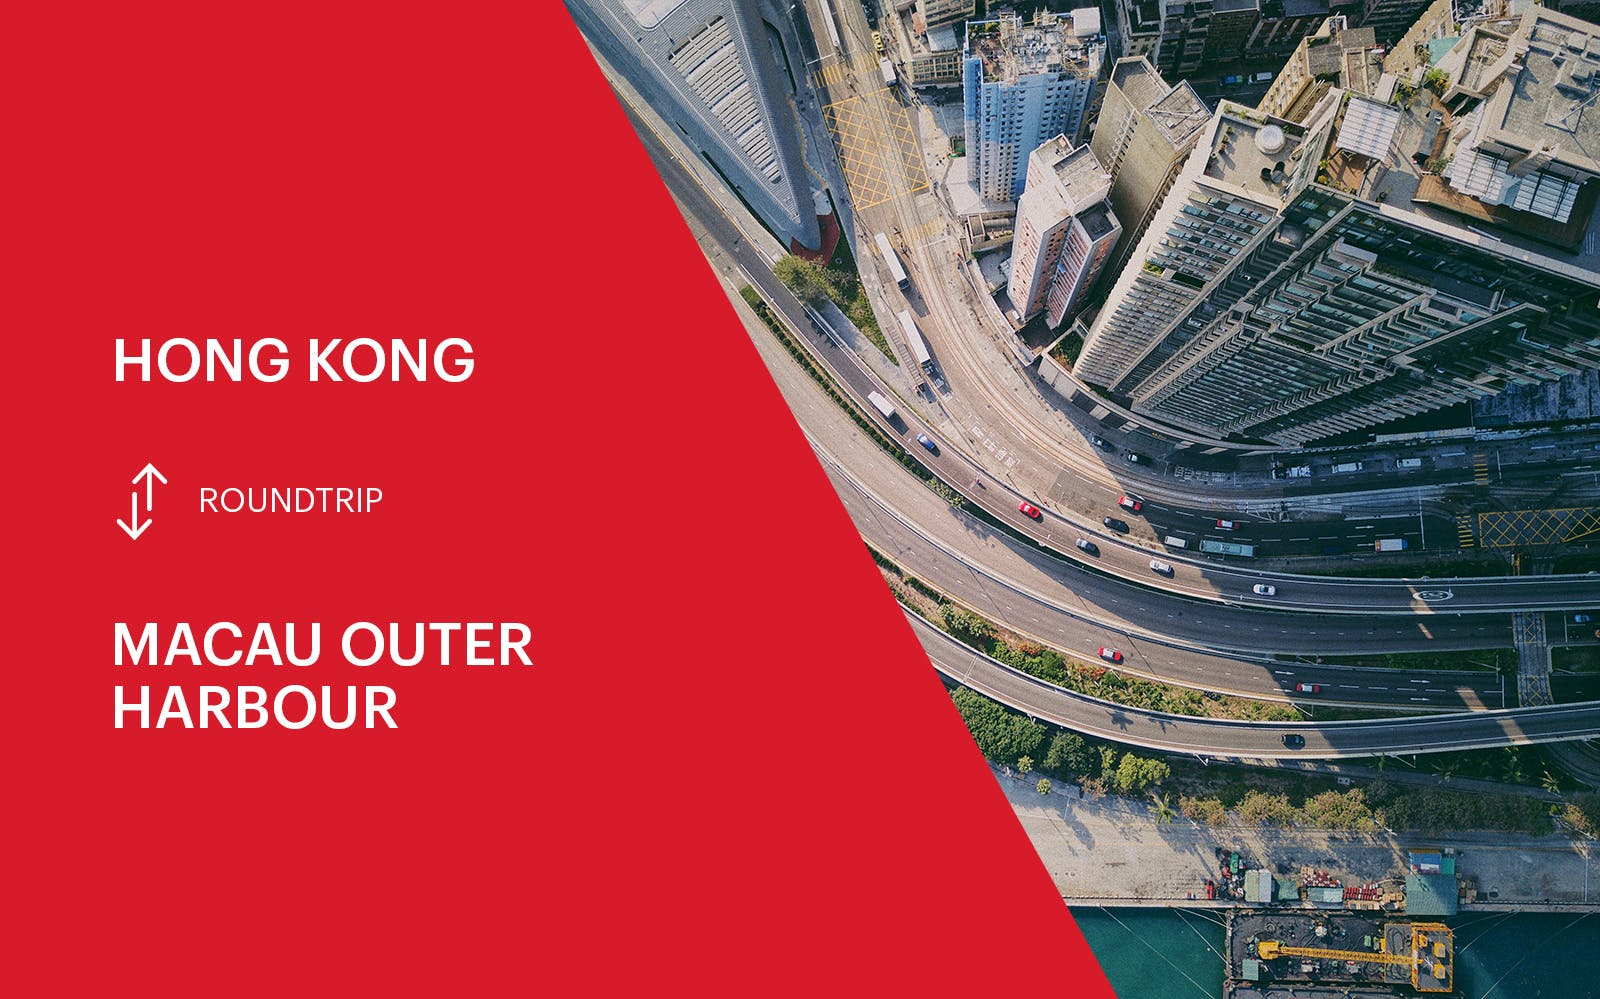 turbojet ferry transfers between hk & macau outer harbour- round trip-1